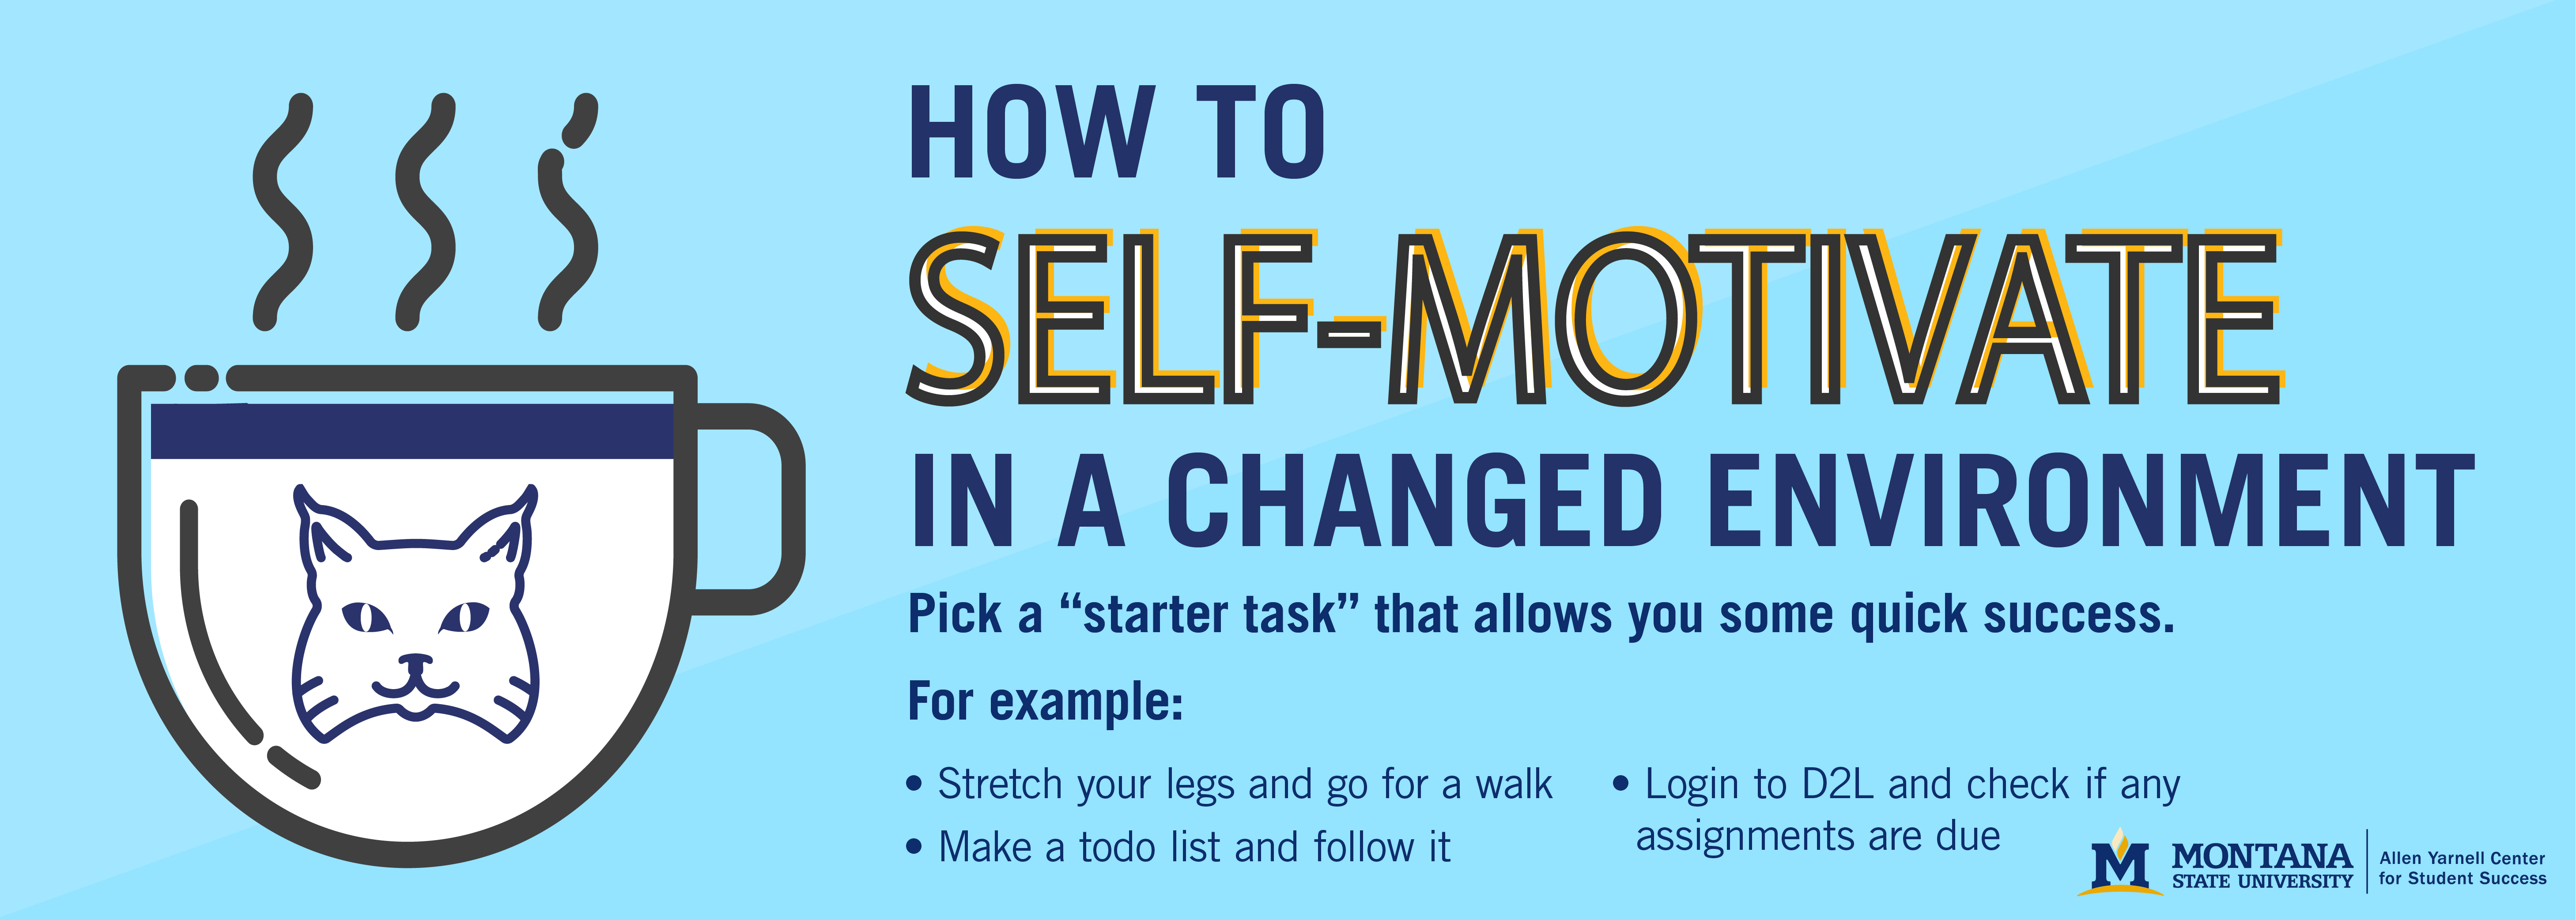 """How to self-motivate in a changed environment: Pick a """"starter task"""" that allows you some quick success. For example: Stretch you legs and go for a walk Make a todo list and follow it login to D2L and see if any assignments are due"""